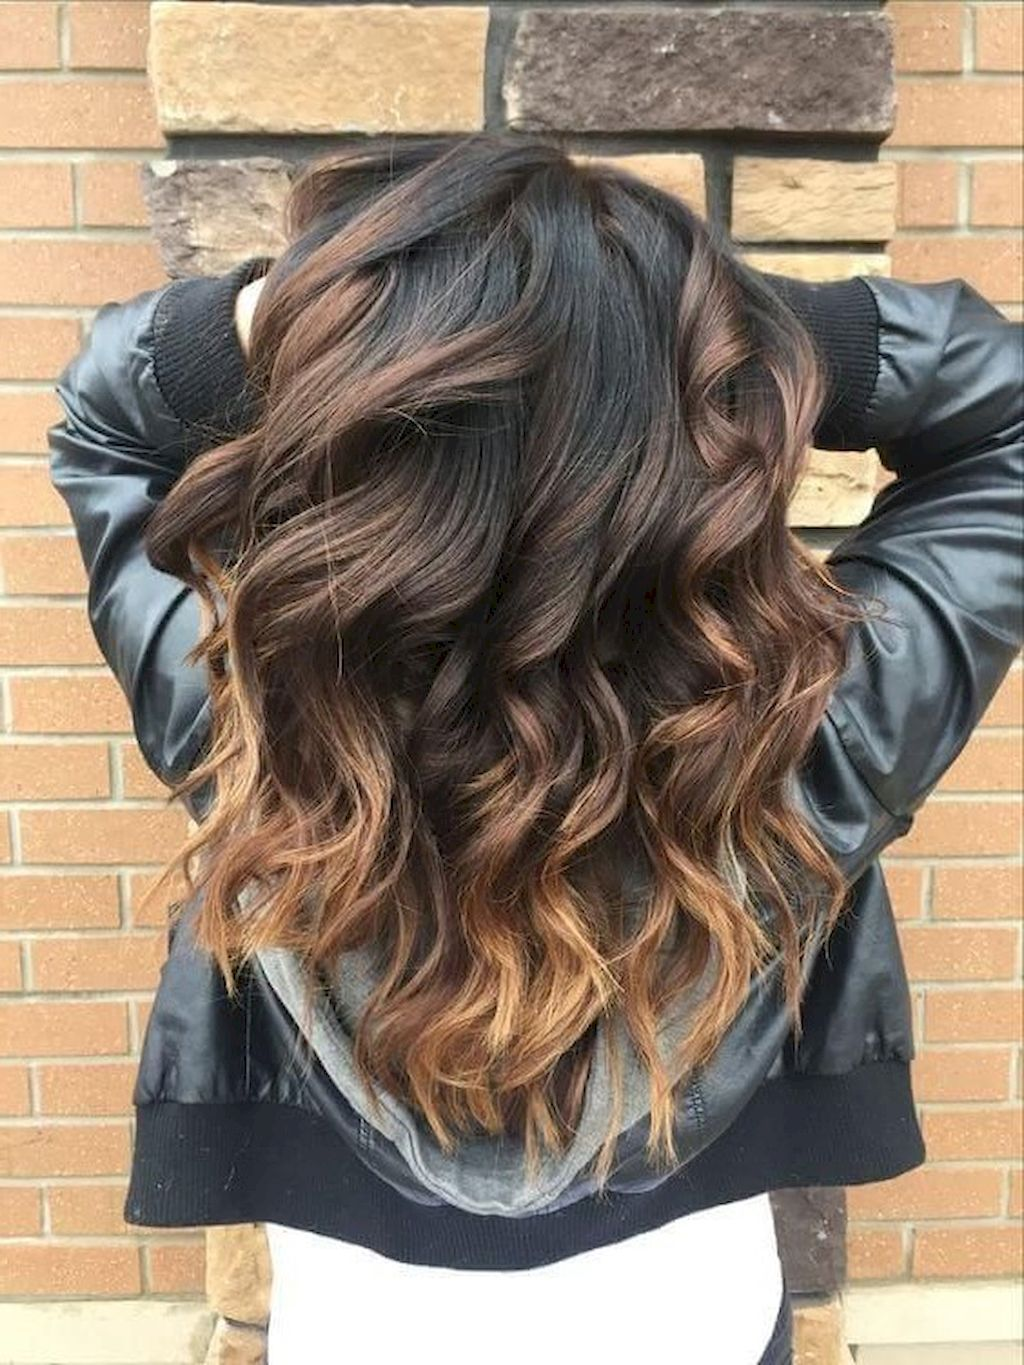 Awesome 75+ Hottest Balayage Hair Color Ideas for Brunettes  https://bitecloth.com/2017/11/16/75-hott… | Hair styles, Hair color  balayage, Brown hair with highlights